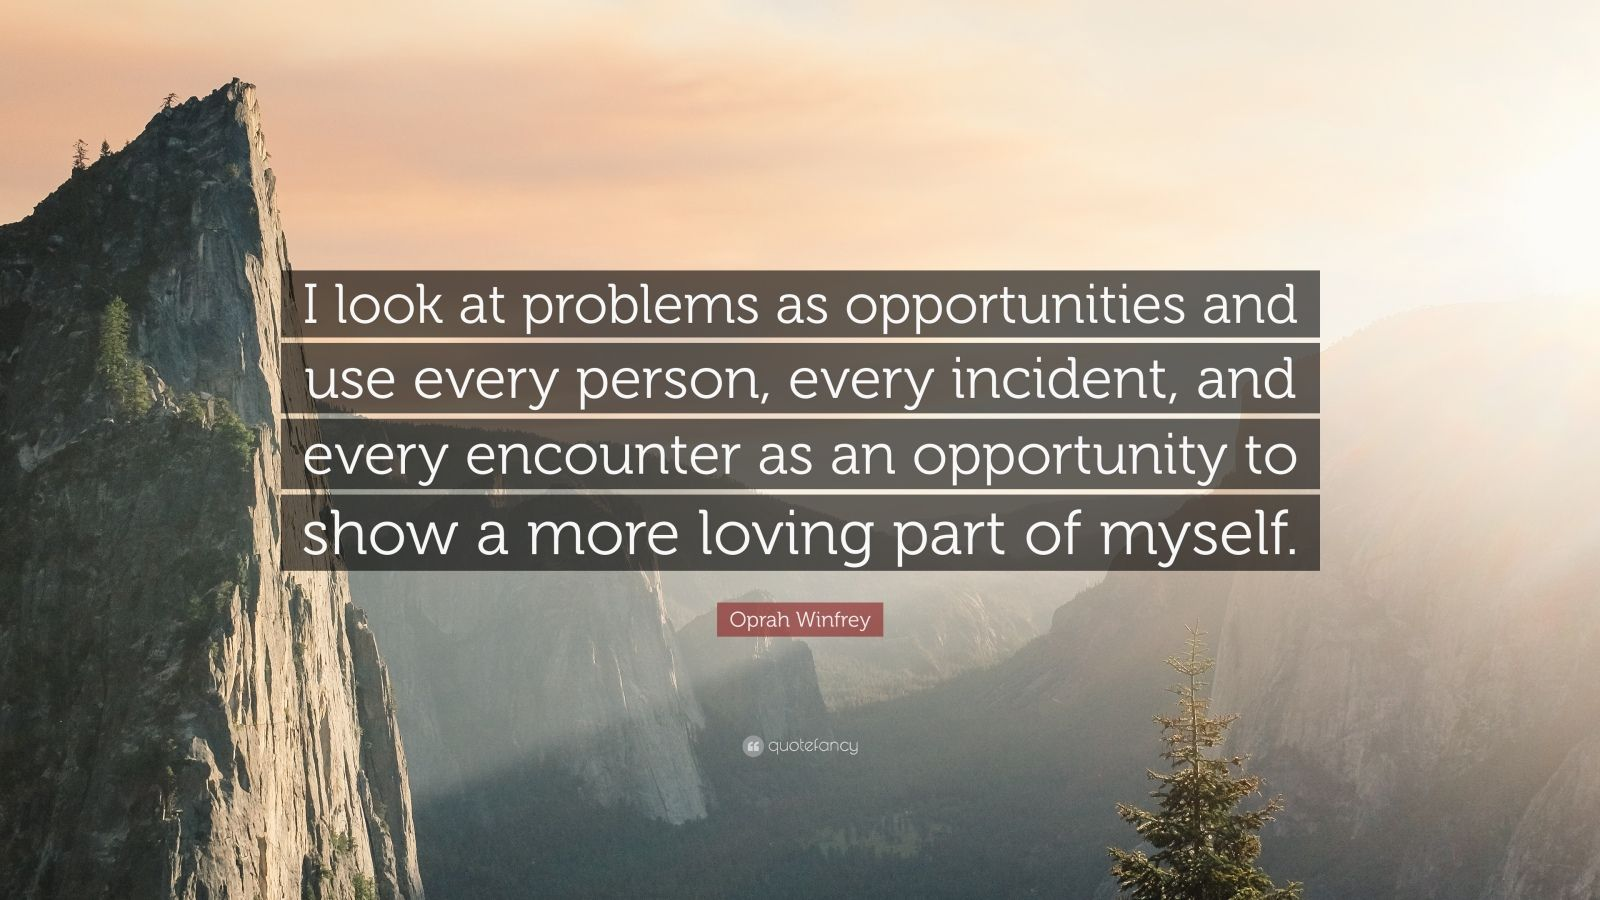 """Oprah Winfrey Quote: """"I look at problems as opportunities and use every person, every incident, and every encounter as an opportunity to show a more loving part of myself."""""""